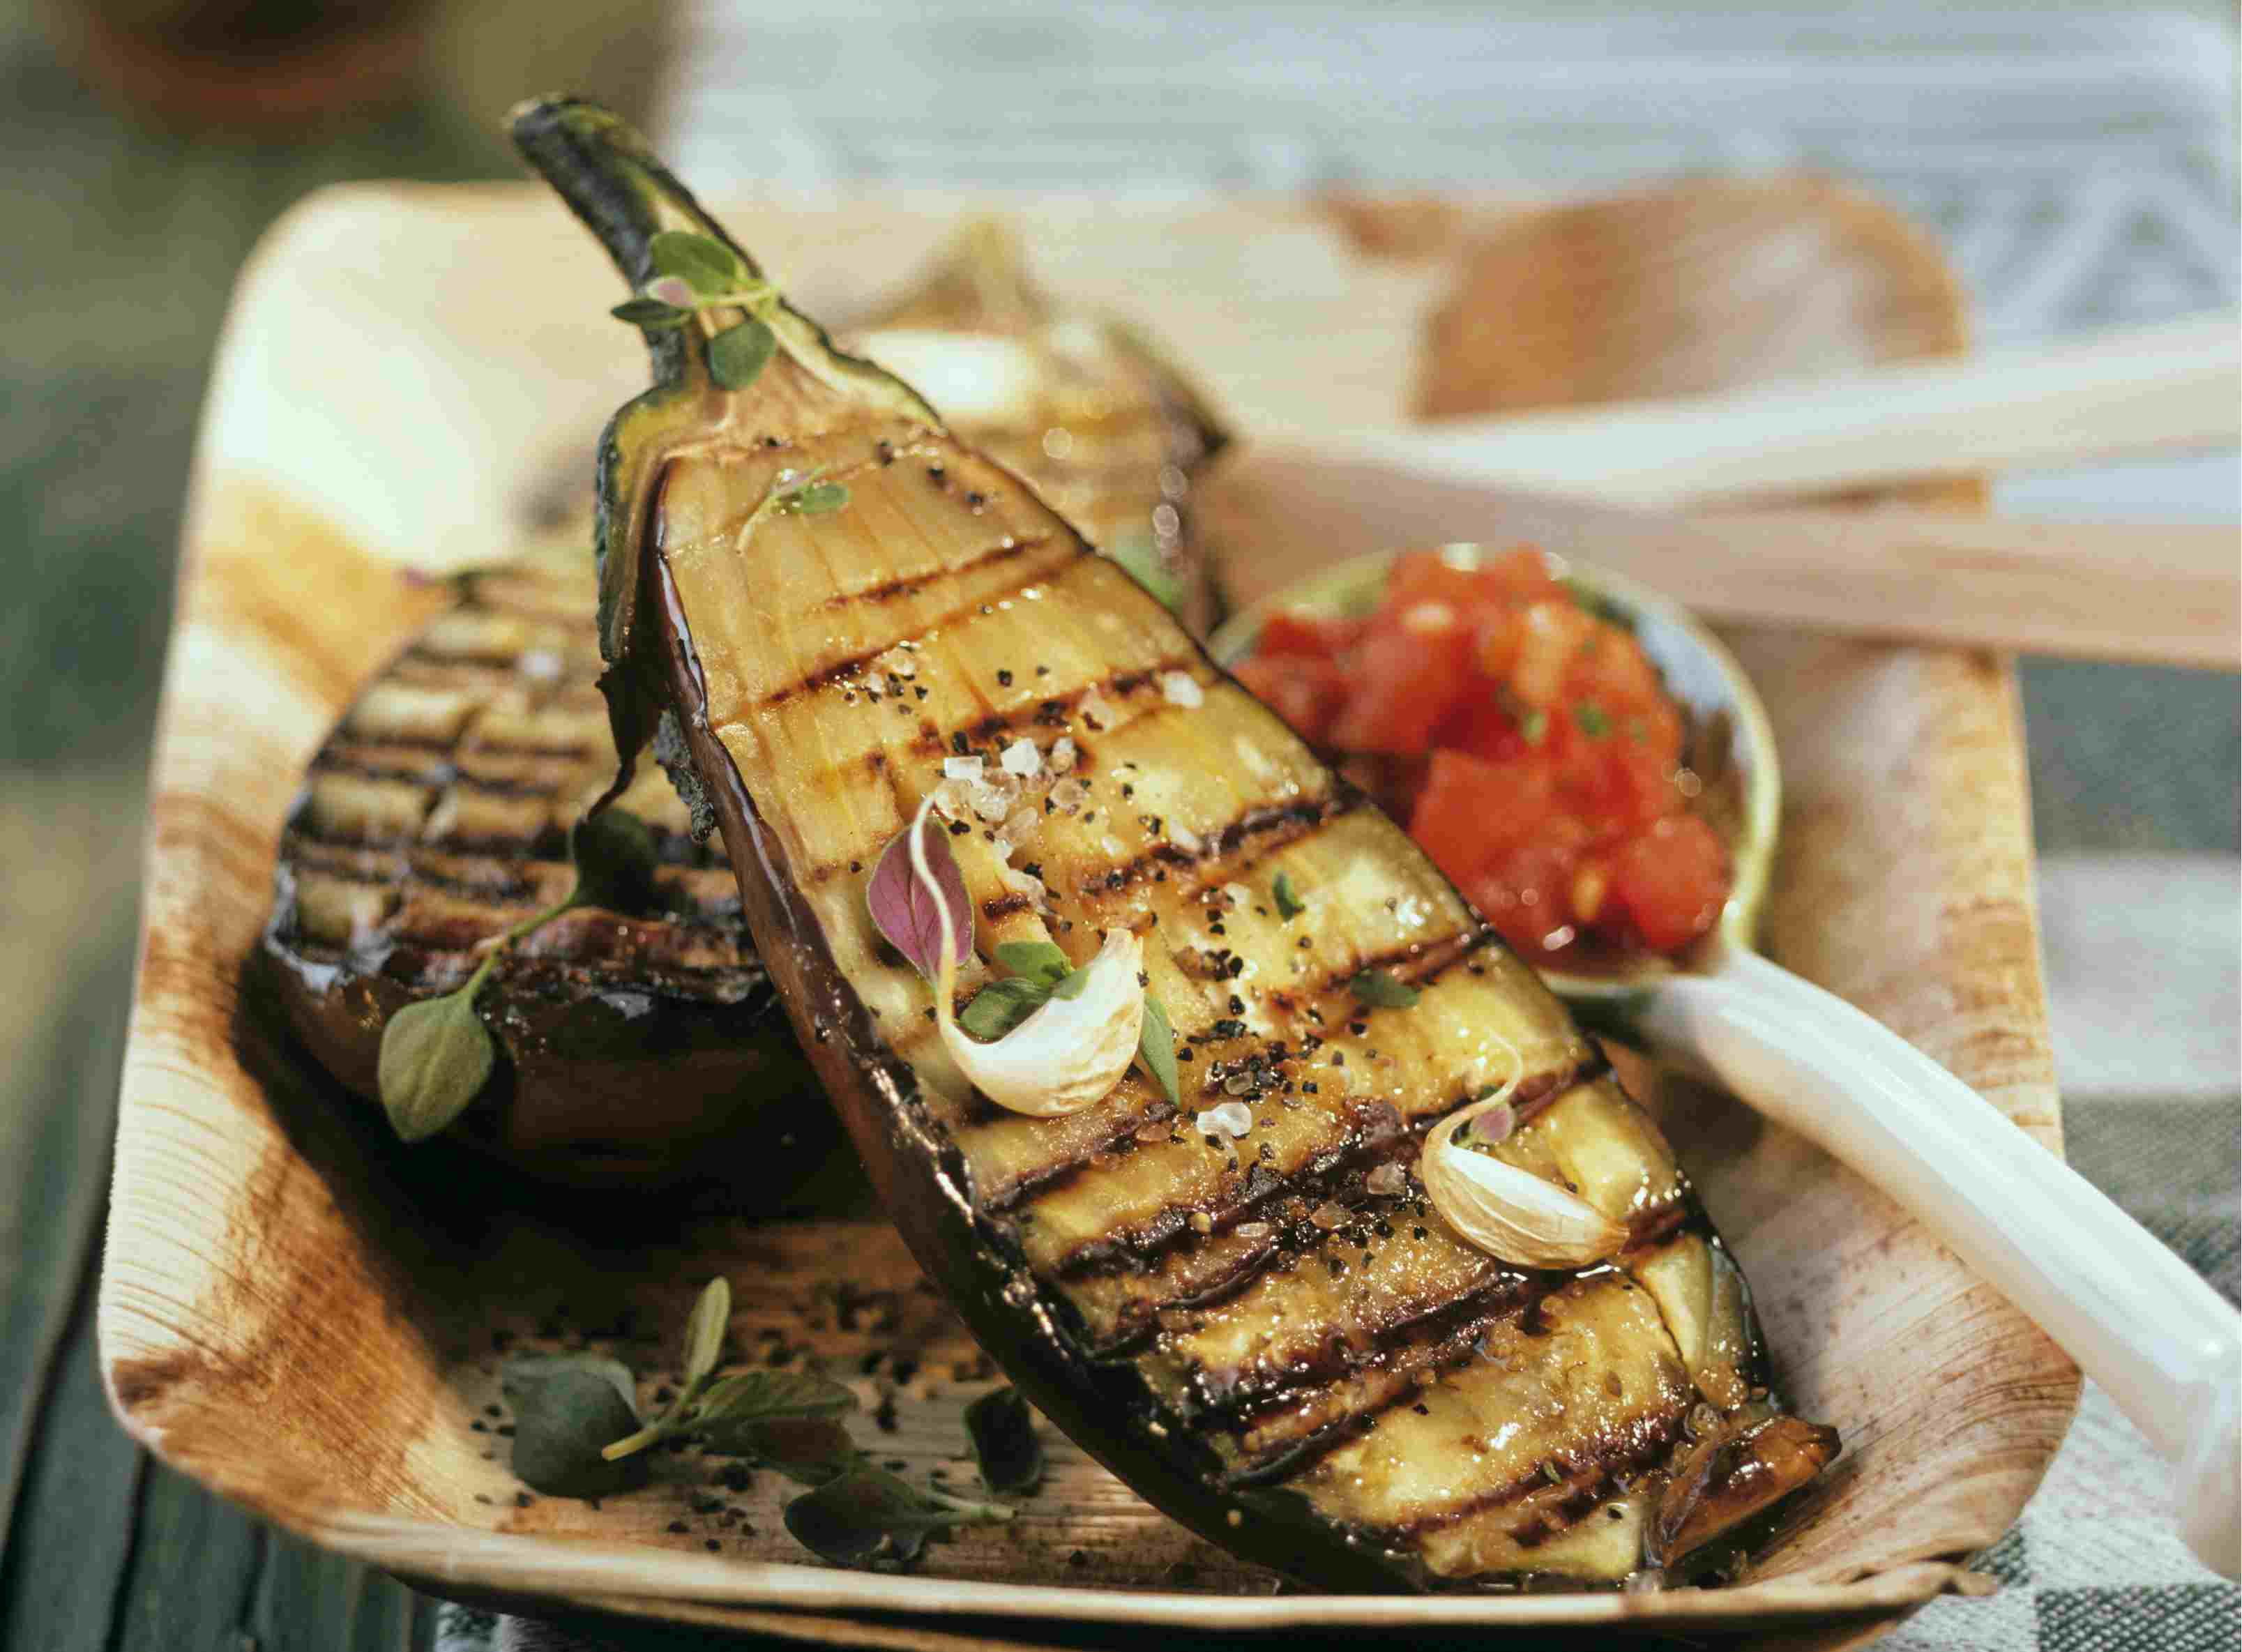 Grilled aubergines with tomato sauce